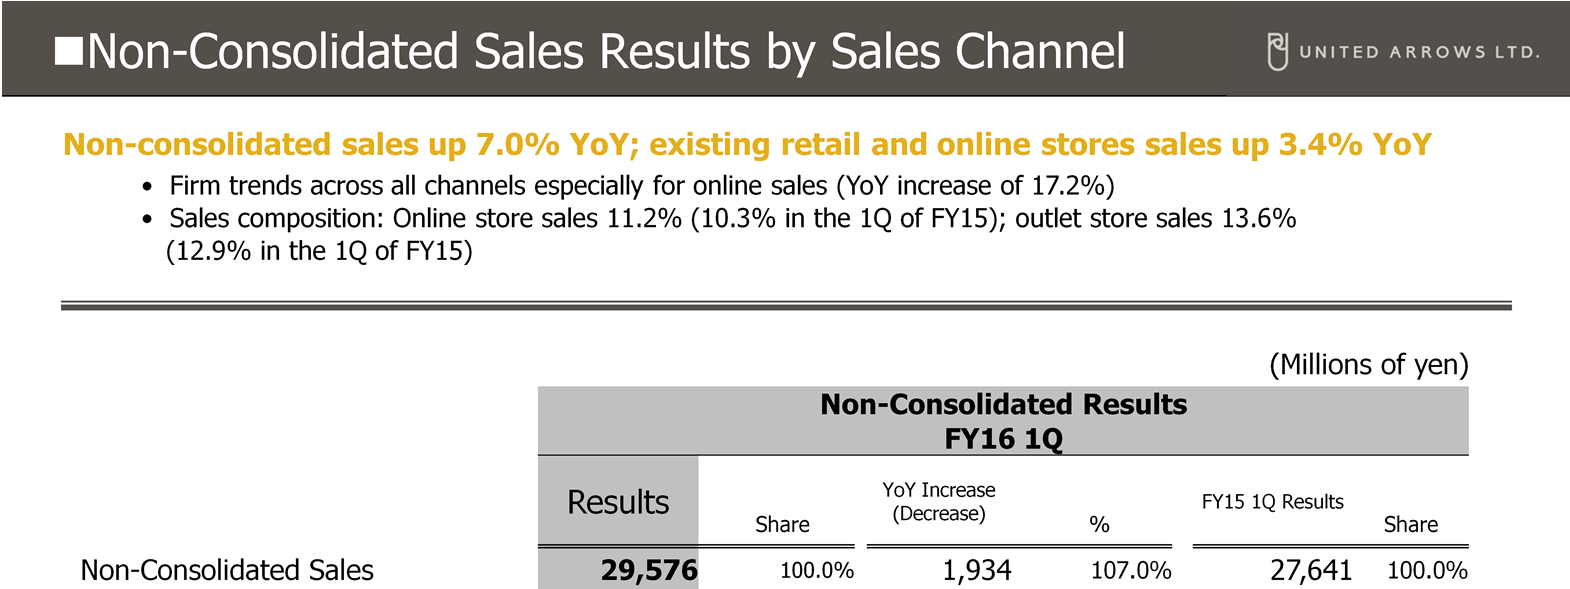 Non-Consolidated Sales Results by Sales Channel Non-consolidated sales were up 7.0% compared with the corresponding period of the previous fiscal year. Existing retail and online sales were also up 3.